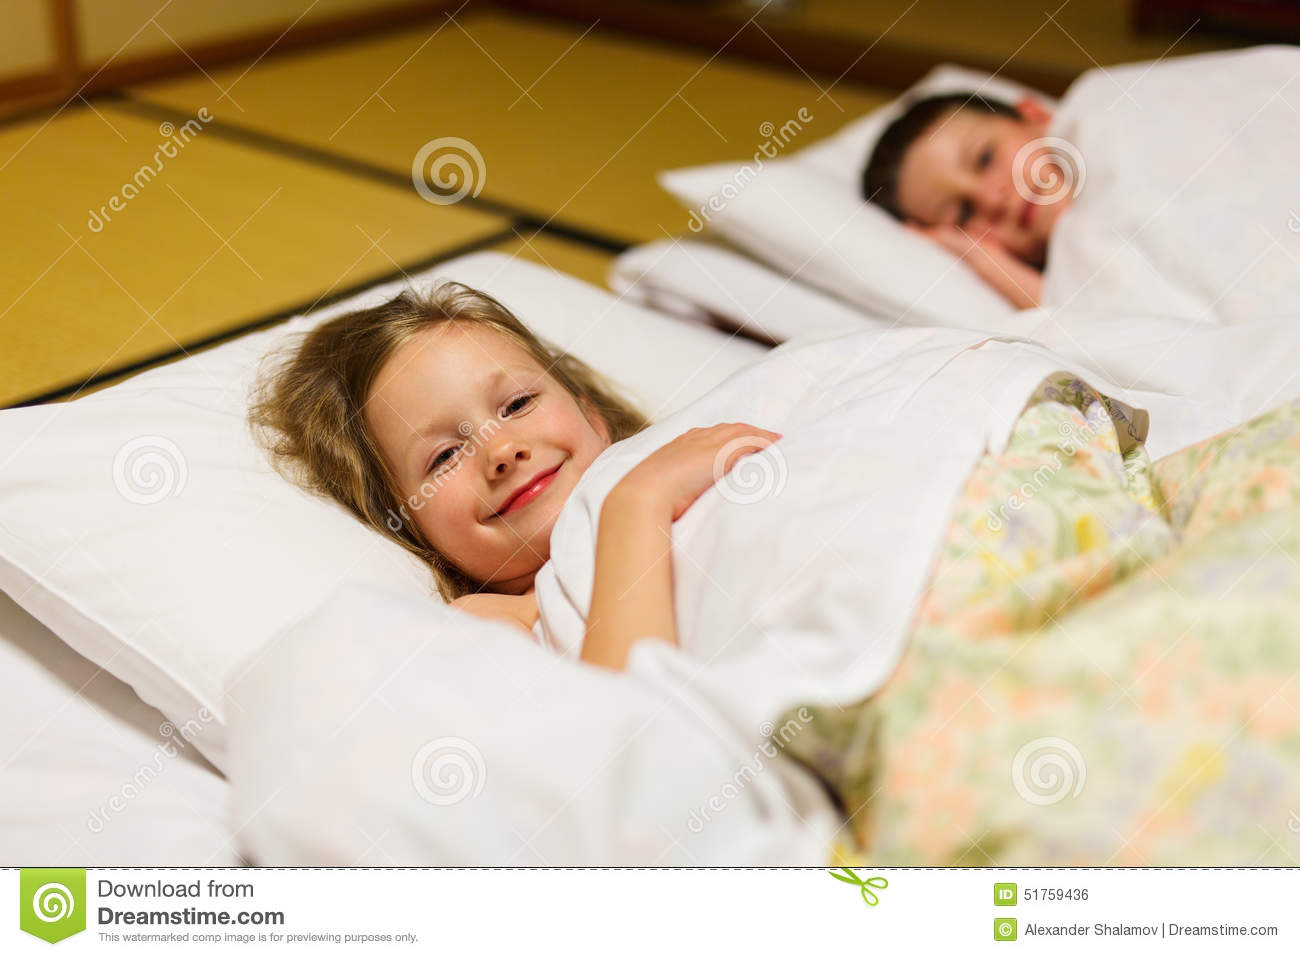 Stock Photo Kids Sleeping Japanese Room Futons Traditional Style Image51759436 on Traditional Japanese House Floor Plans